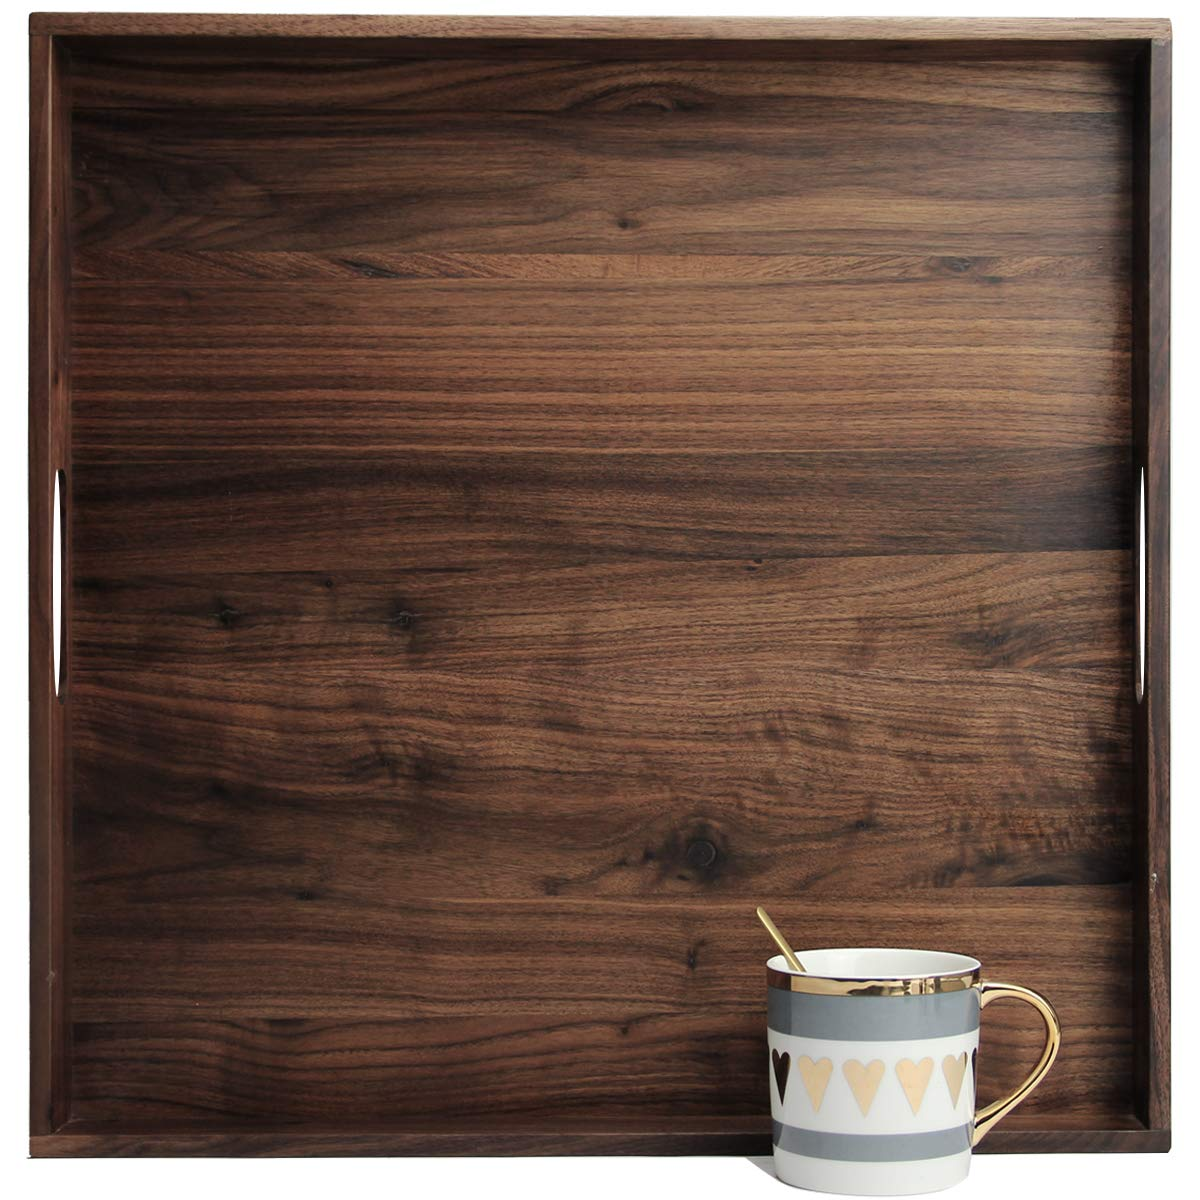 MAGIGO 19 x 19 Inches Large Square Black Walnut Wood Ottoman Tray with Handles, Serve Tea, Coffee or Breakfast in Bed, Classic Wooden Decorative Serving Tray by MAGIGO